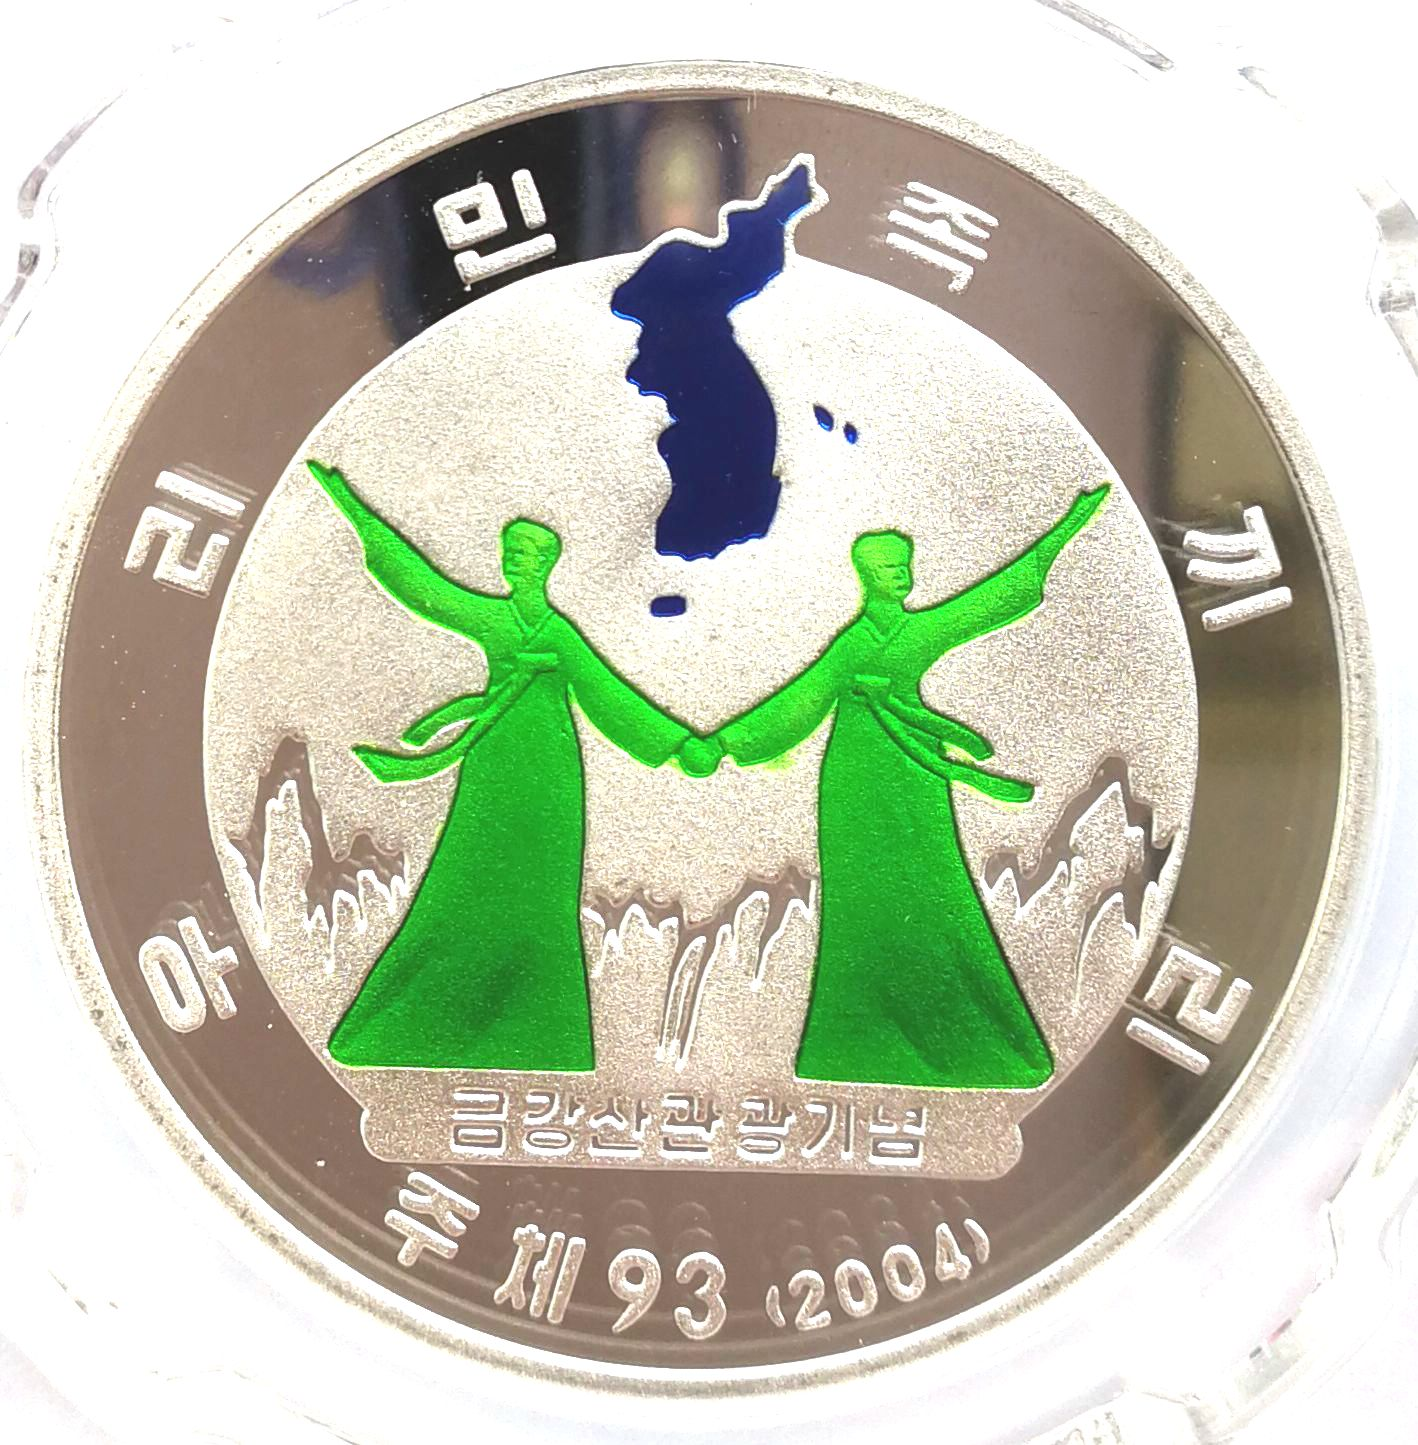 "L3606, Korea ""Unified Desire, Korean Map"" Proof Silver Coin 2004, PF70, CSIS Grade"